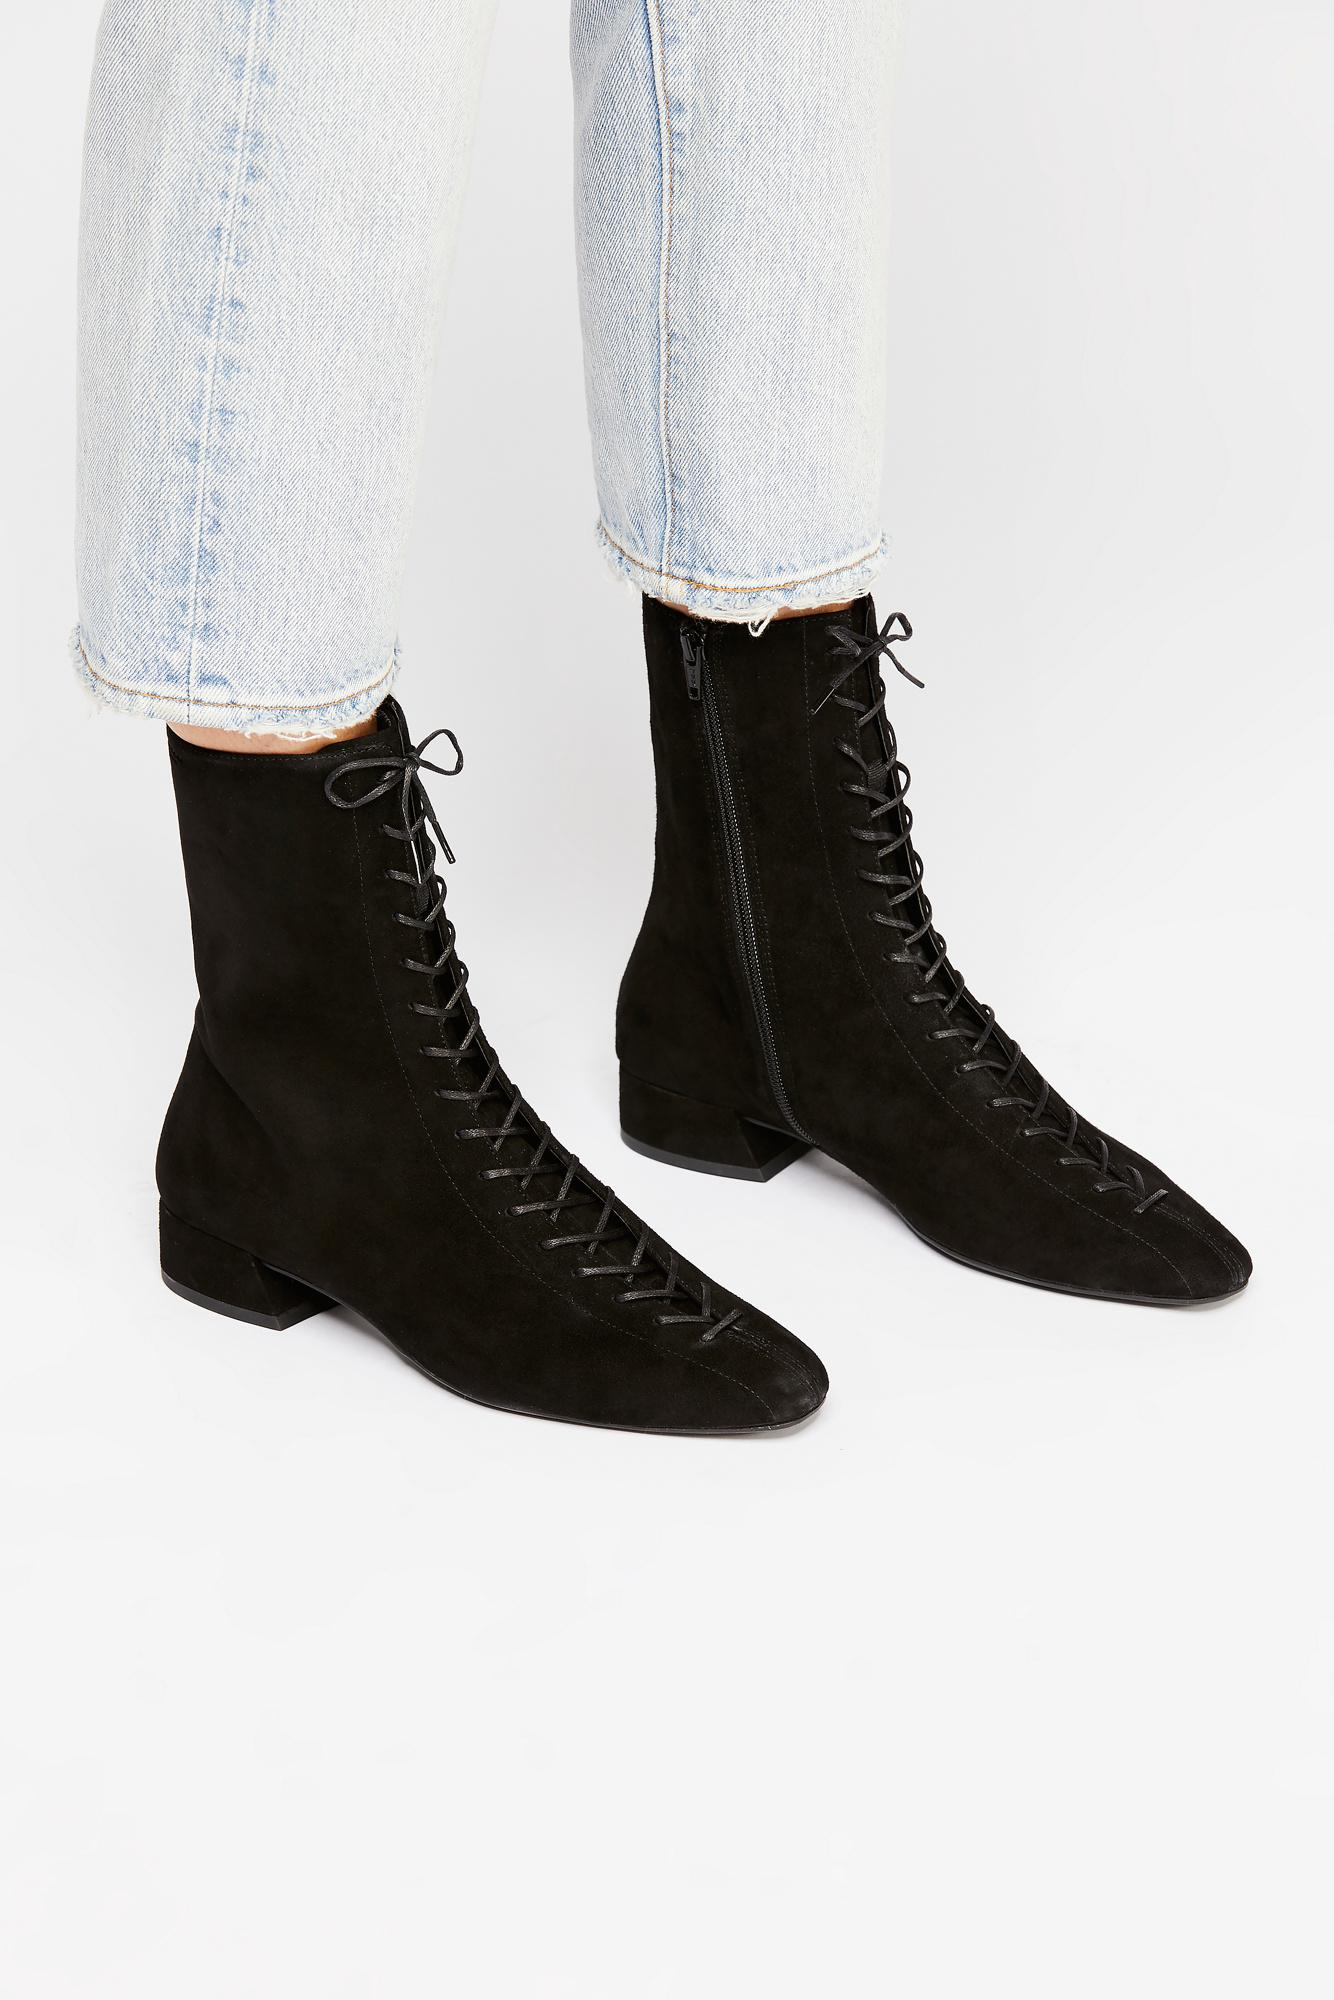 e81b1970eff Free People Joyce Lace Up Boot By Vagabond Shoemakers in Black - Lyst